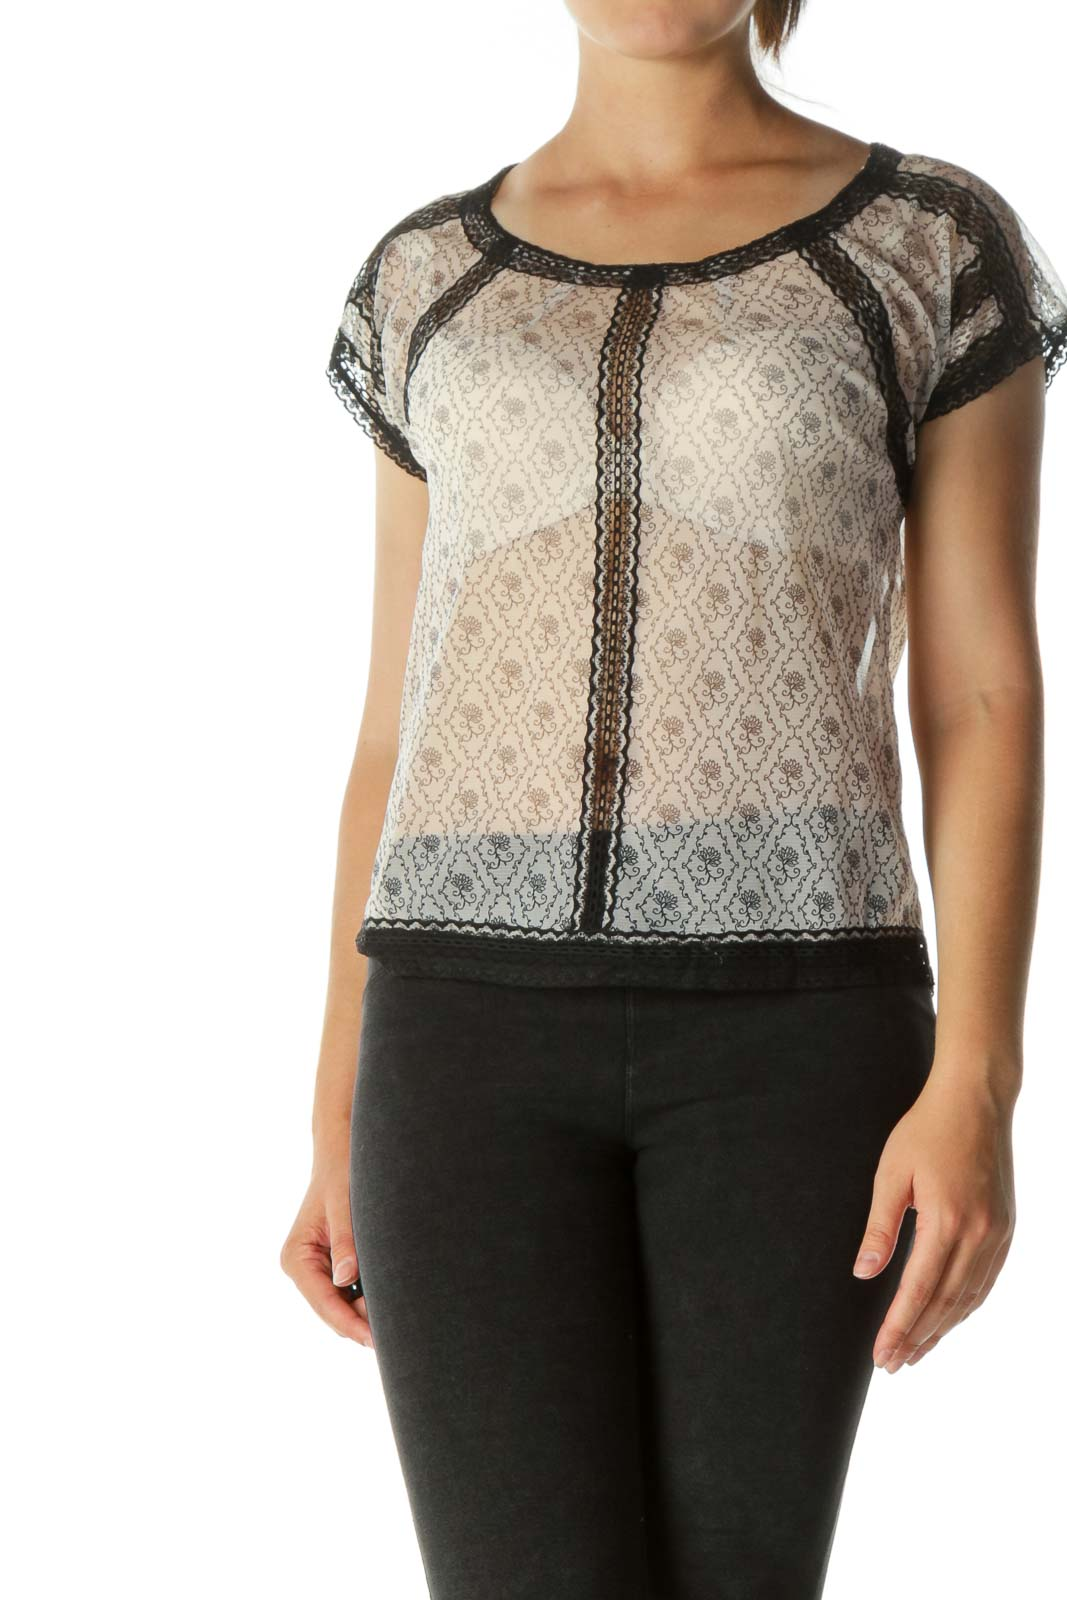 Black & White See-through Lace Blouse